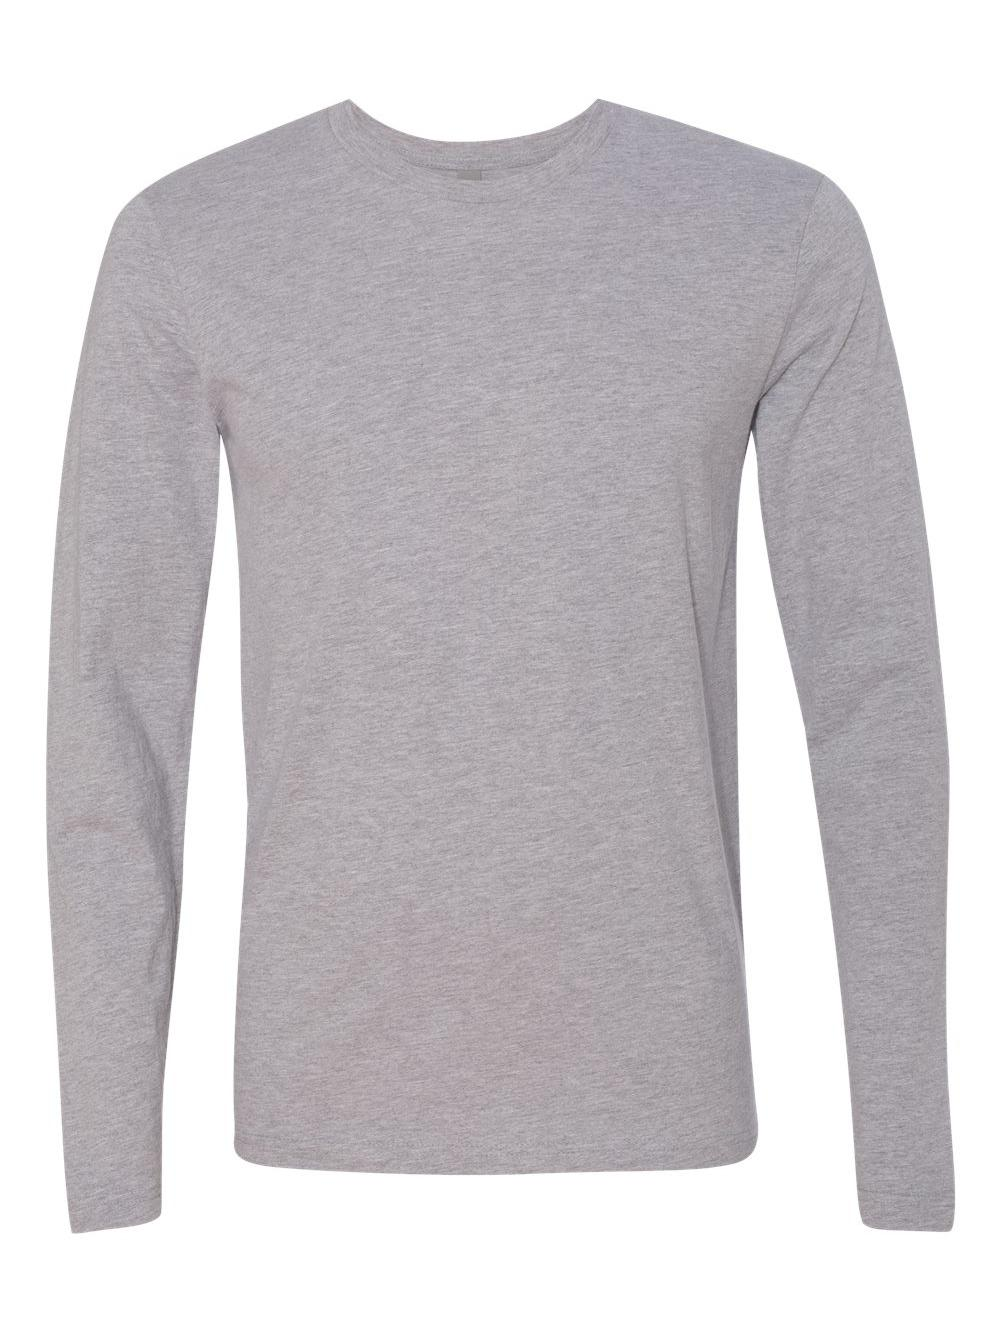 Next Level Apparel N3601 Mens Premium Fitted Long-sleeve Crew Heather Gray  2xl. About this product. Picture 1 of 4  Picture 2 of 4  Picture 3 of 4 ... b1fd8d0d3b83c